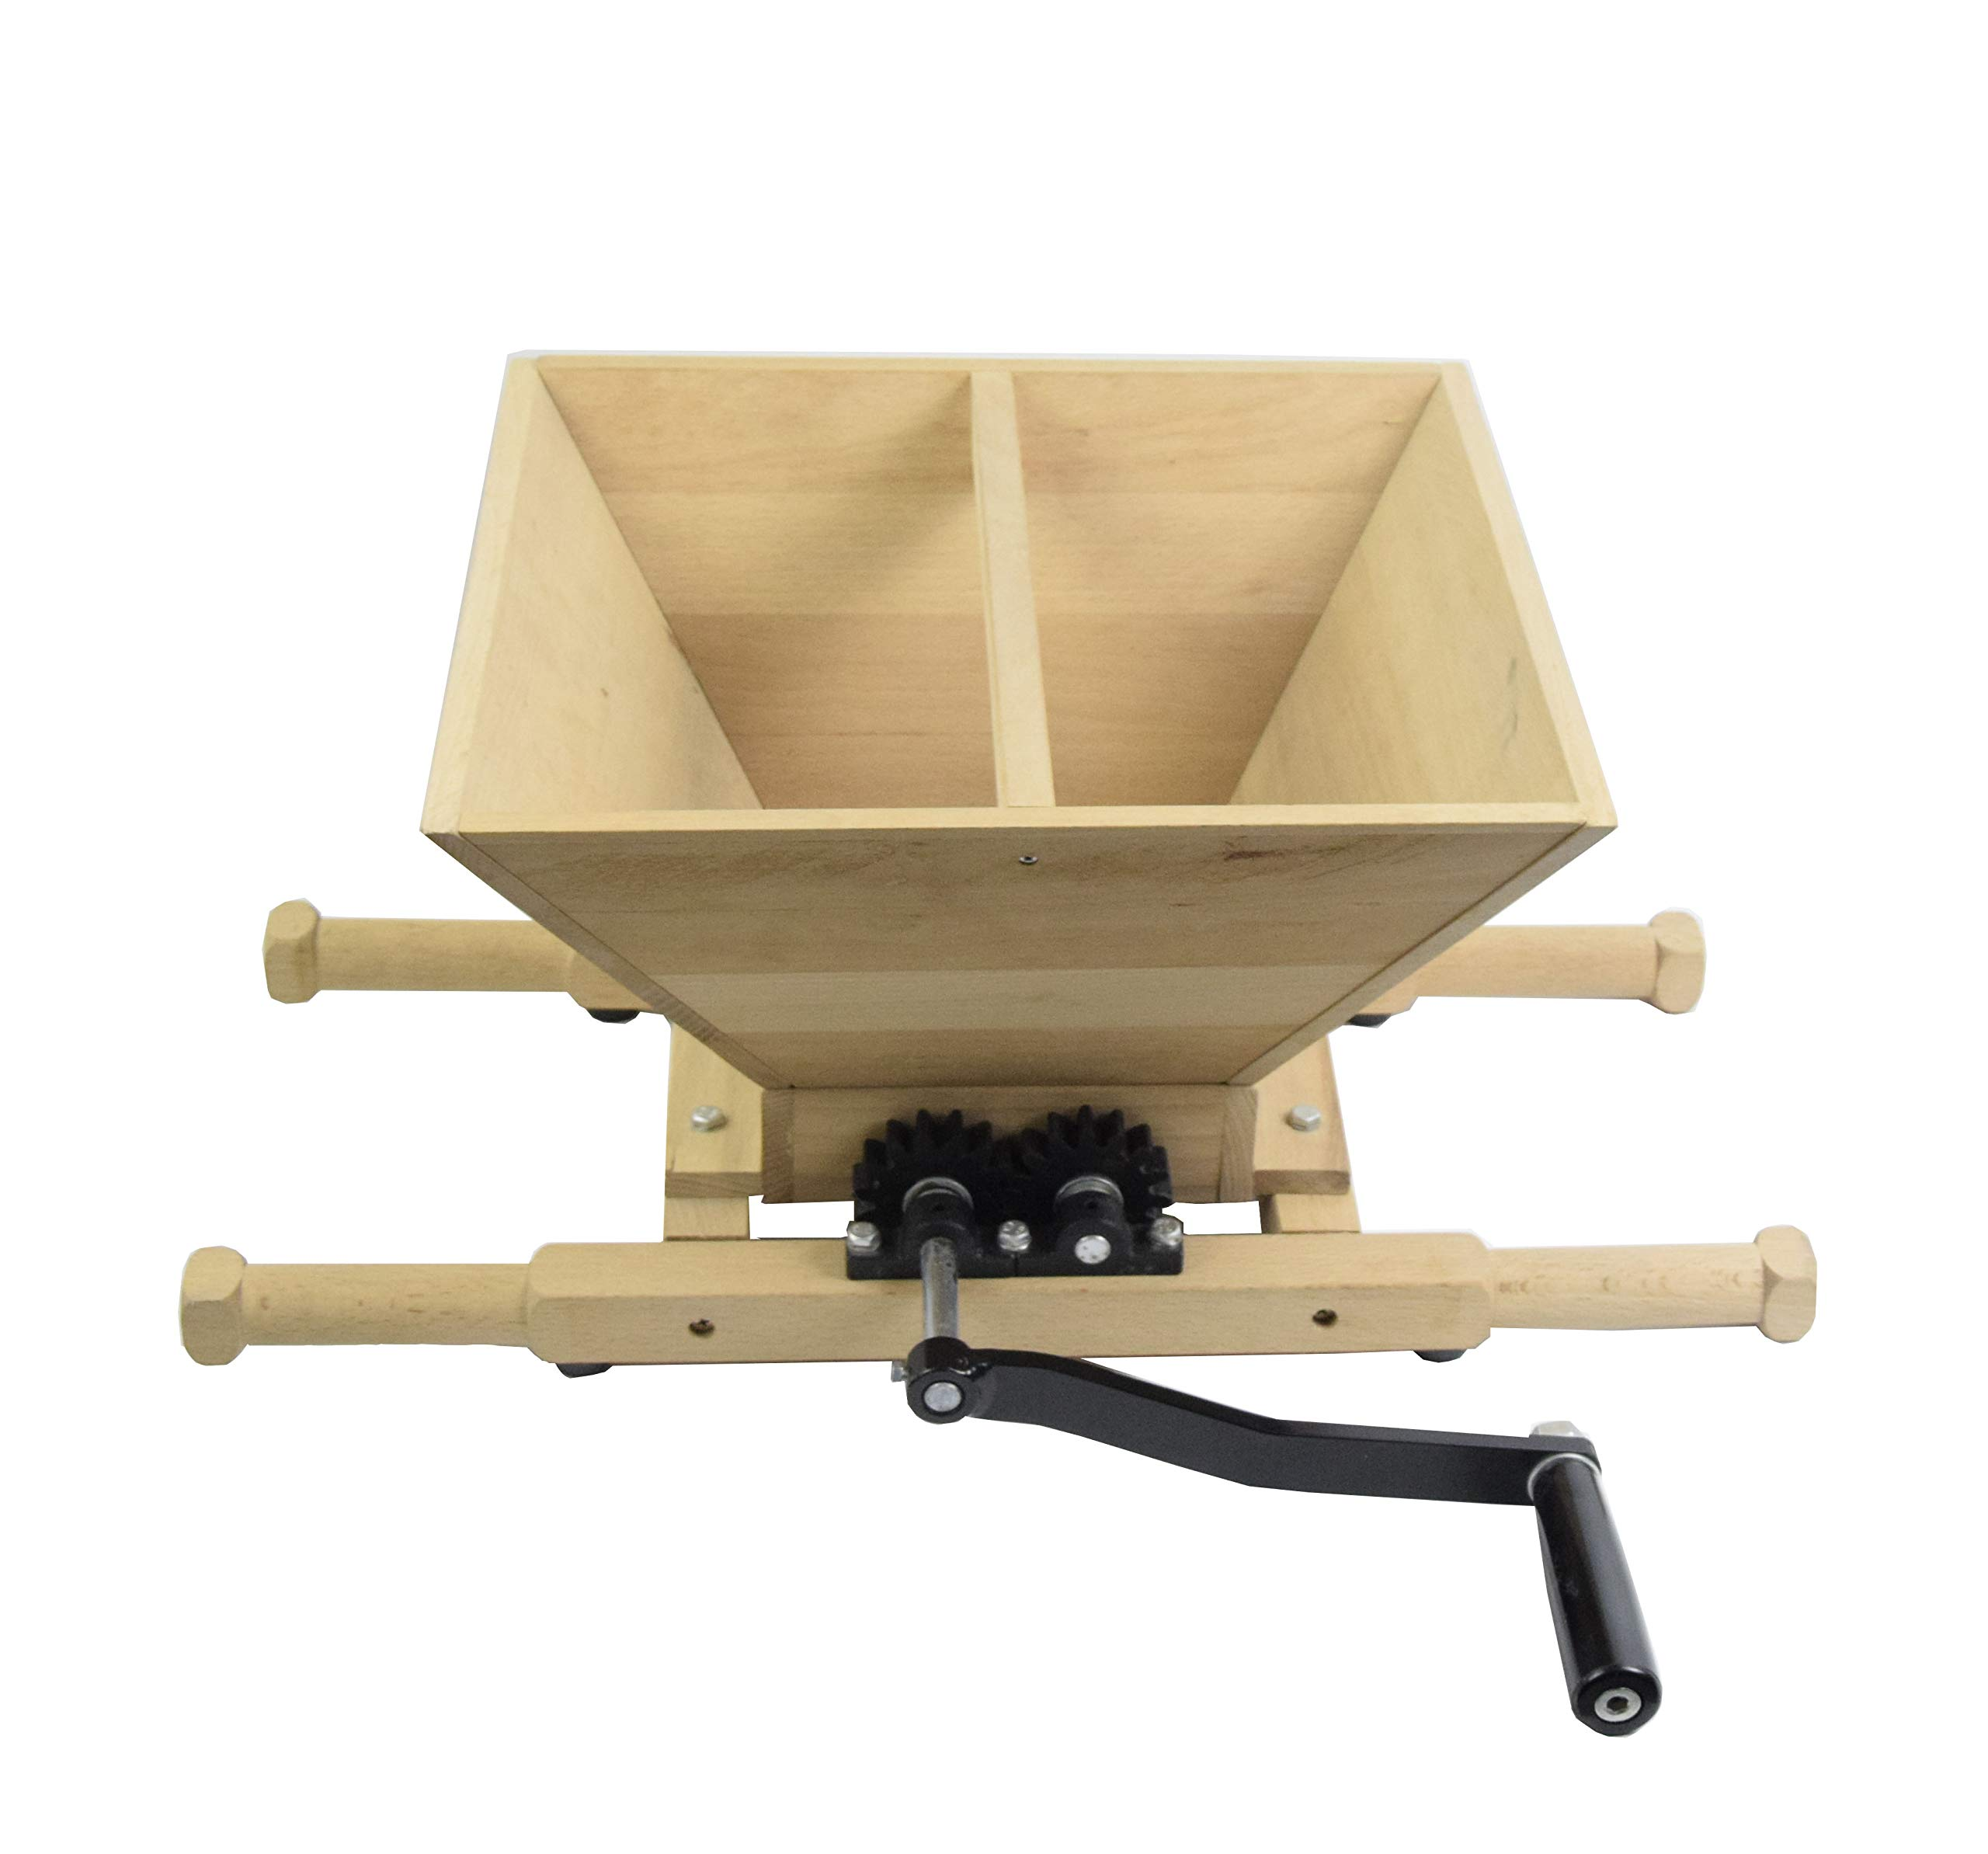 Hard Fruit Crushing 7L Fruit Cutter Apple Cider Wood Home Brew Wine Crusher for Cider Press(Beechwood)